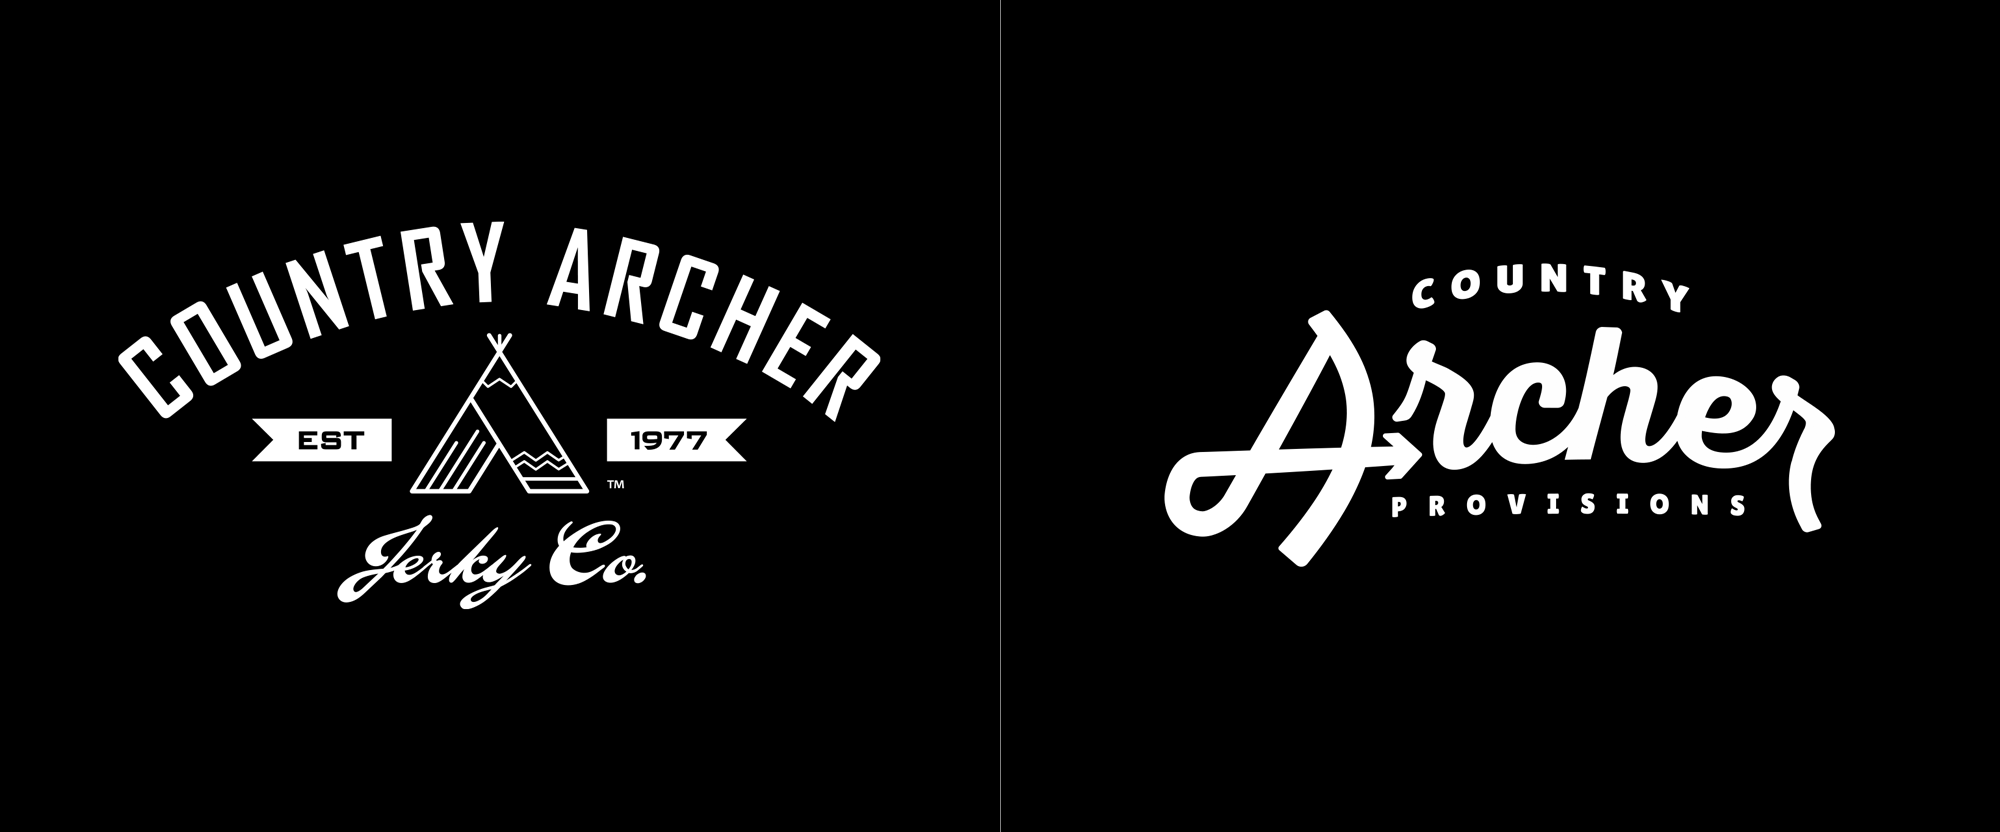 New Logo and Packaging for Country Archer